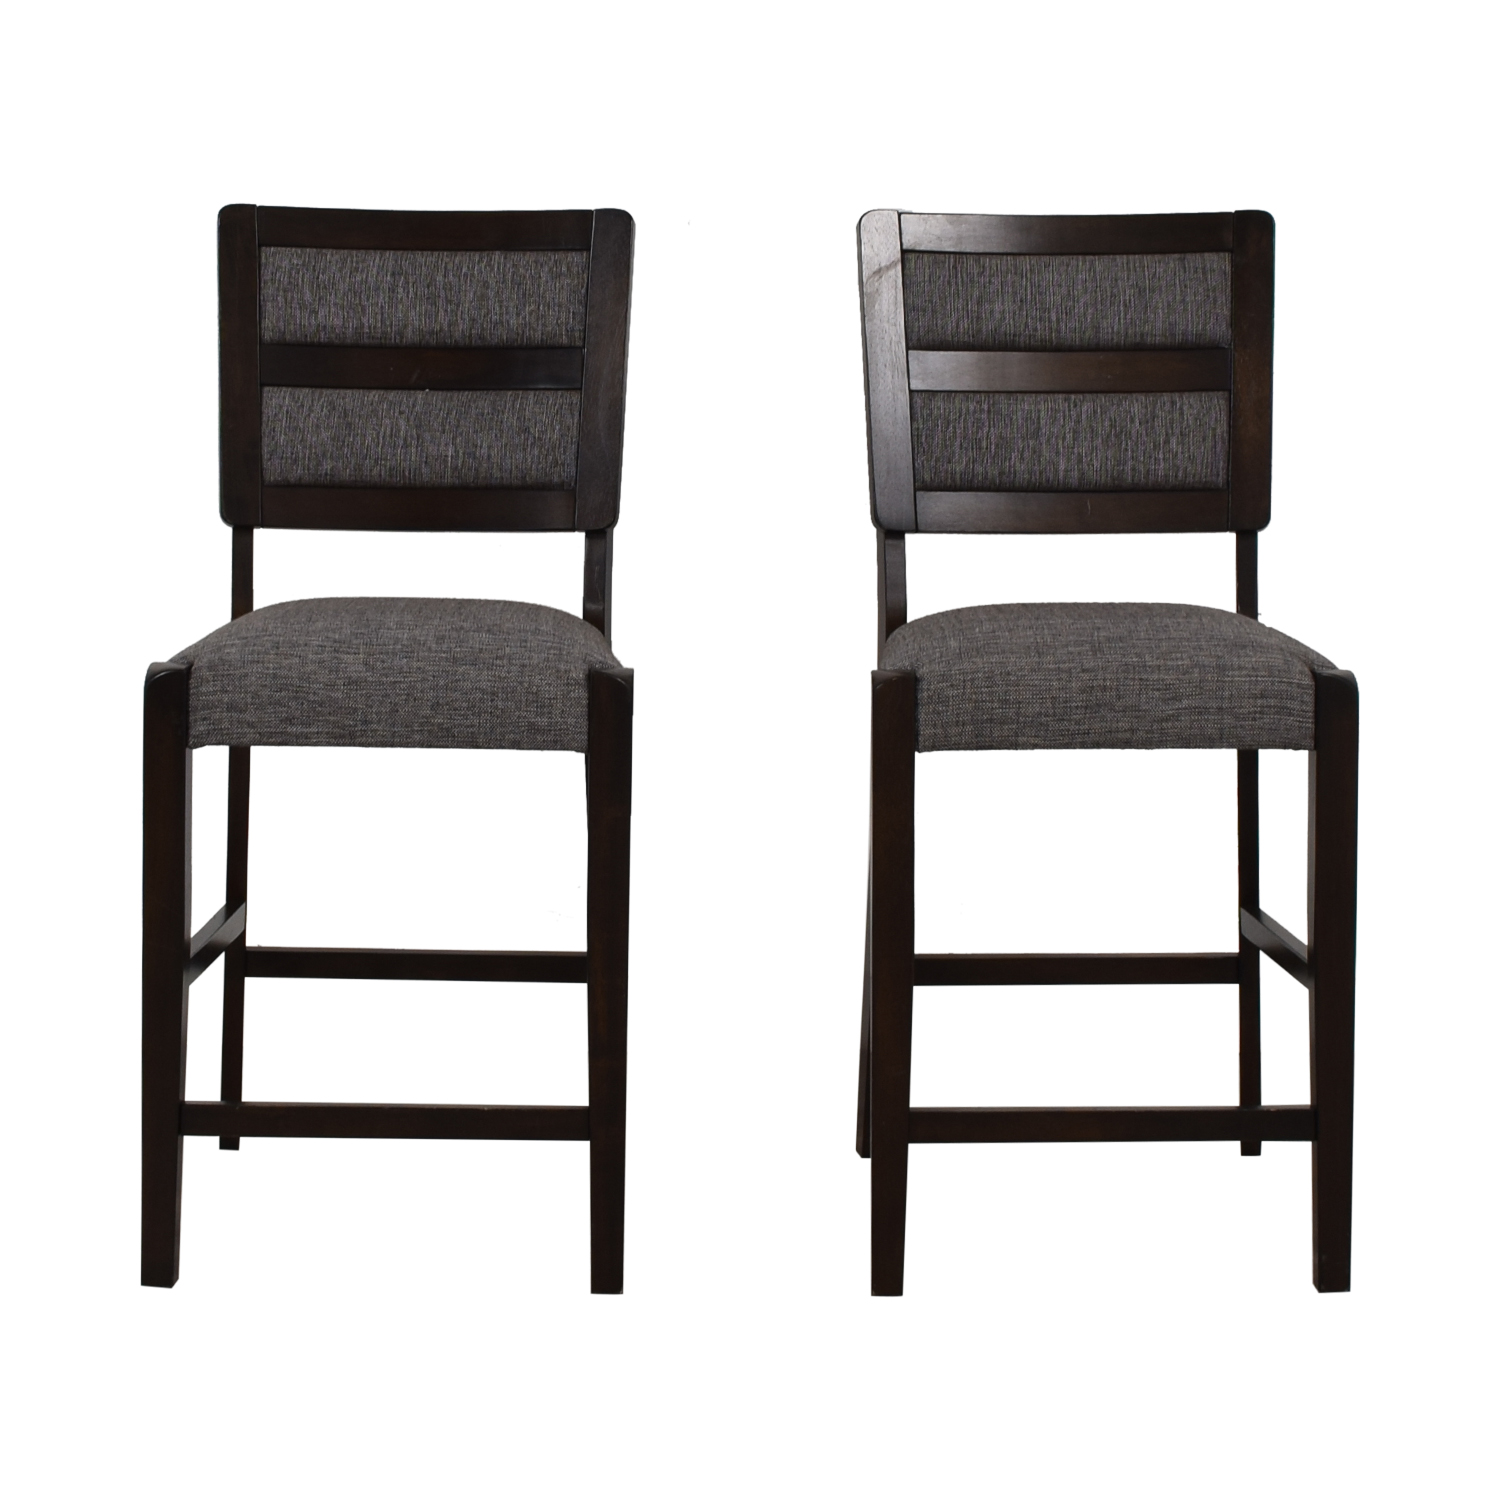 Strange 79 Off Raymour Flanigan Raymour Flanigan Grey Upholstered Counter Height Stools Chairs Gmtry Best Dining Table And Chair Ideas Images Gmtryco